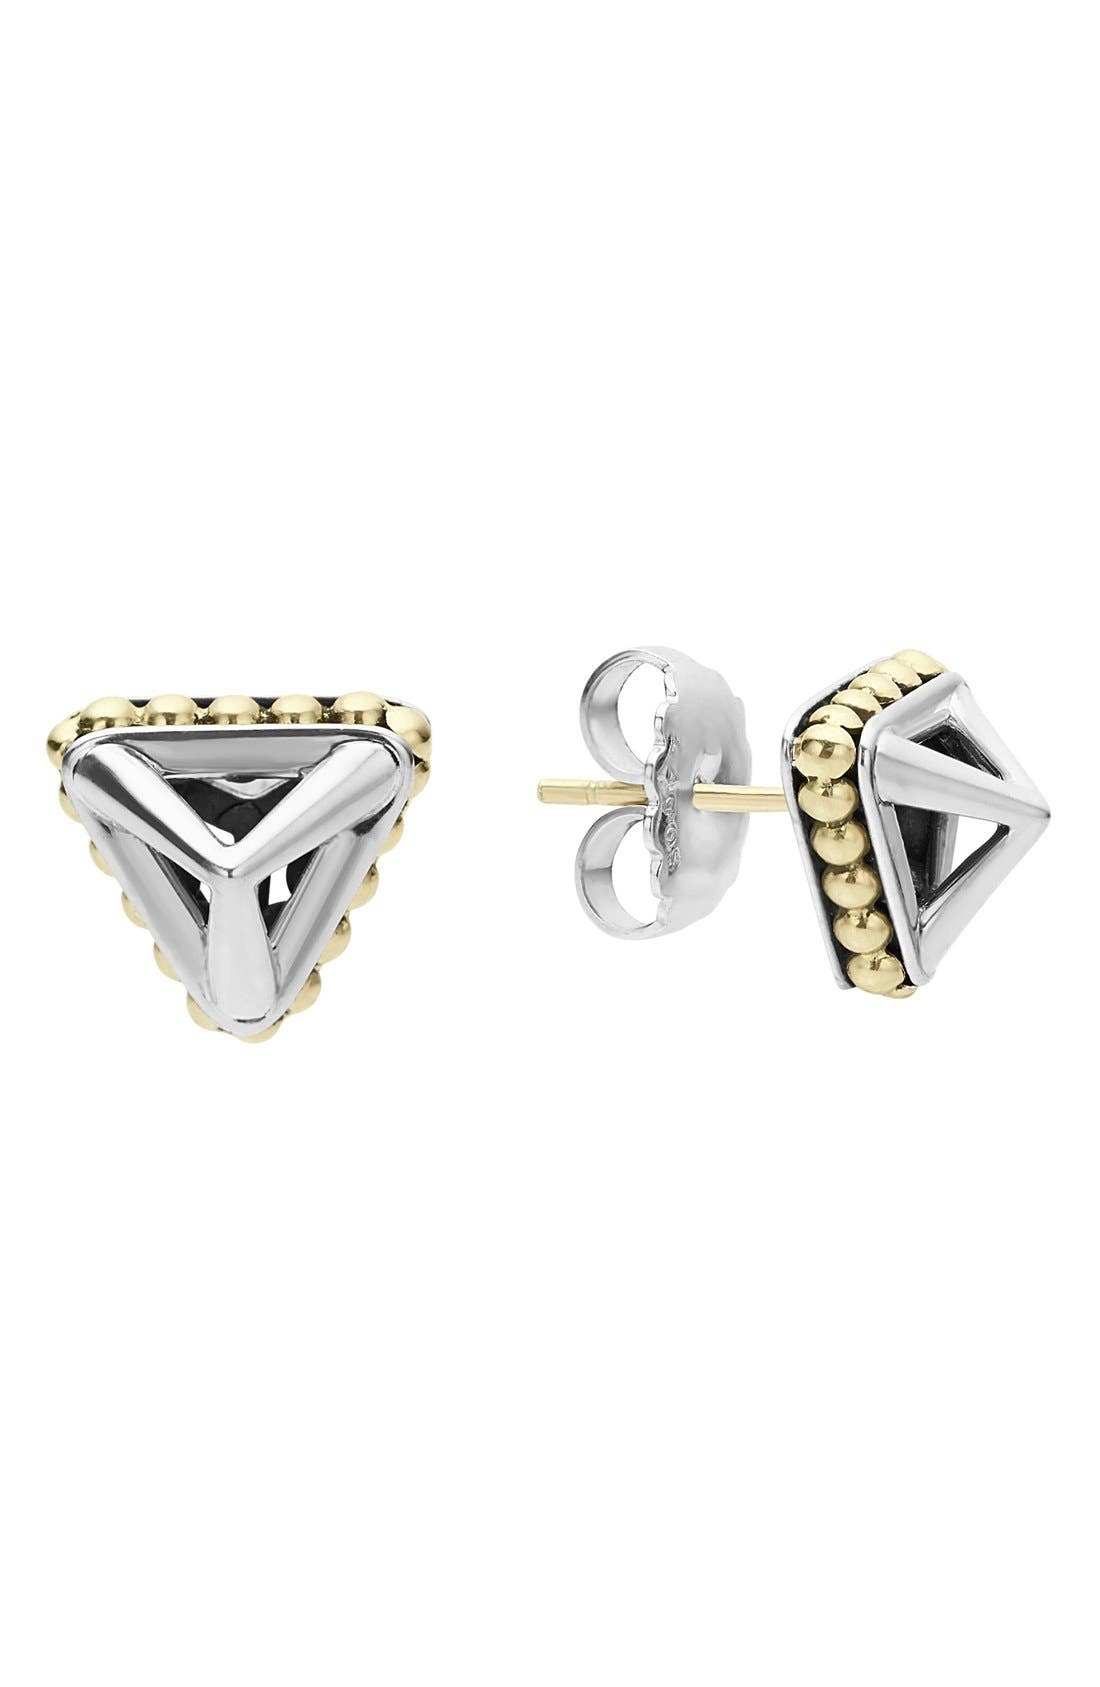 KSL Pyramid Stud Earrings,                             Main thumbnail 1, color,                             Silver/ Gold